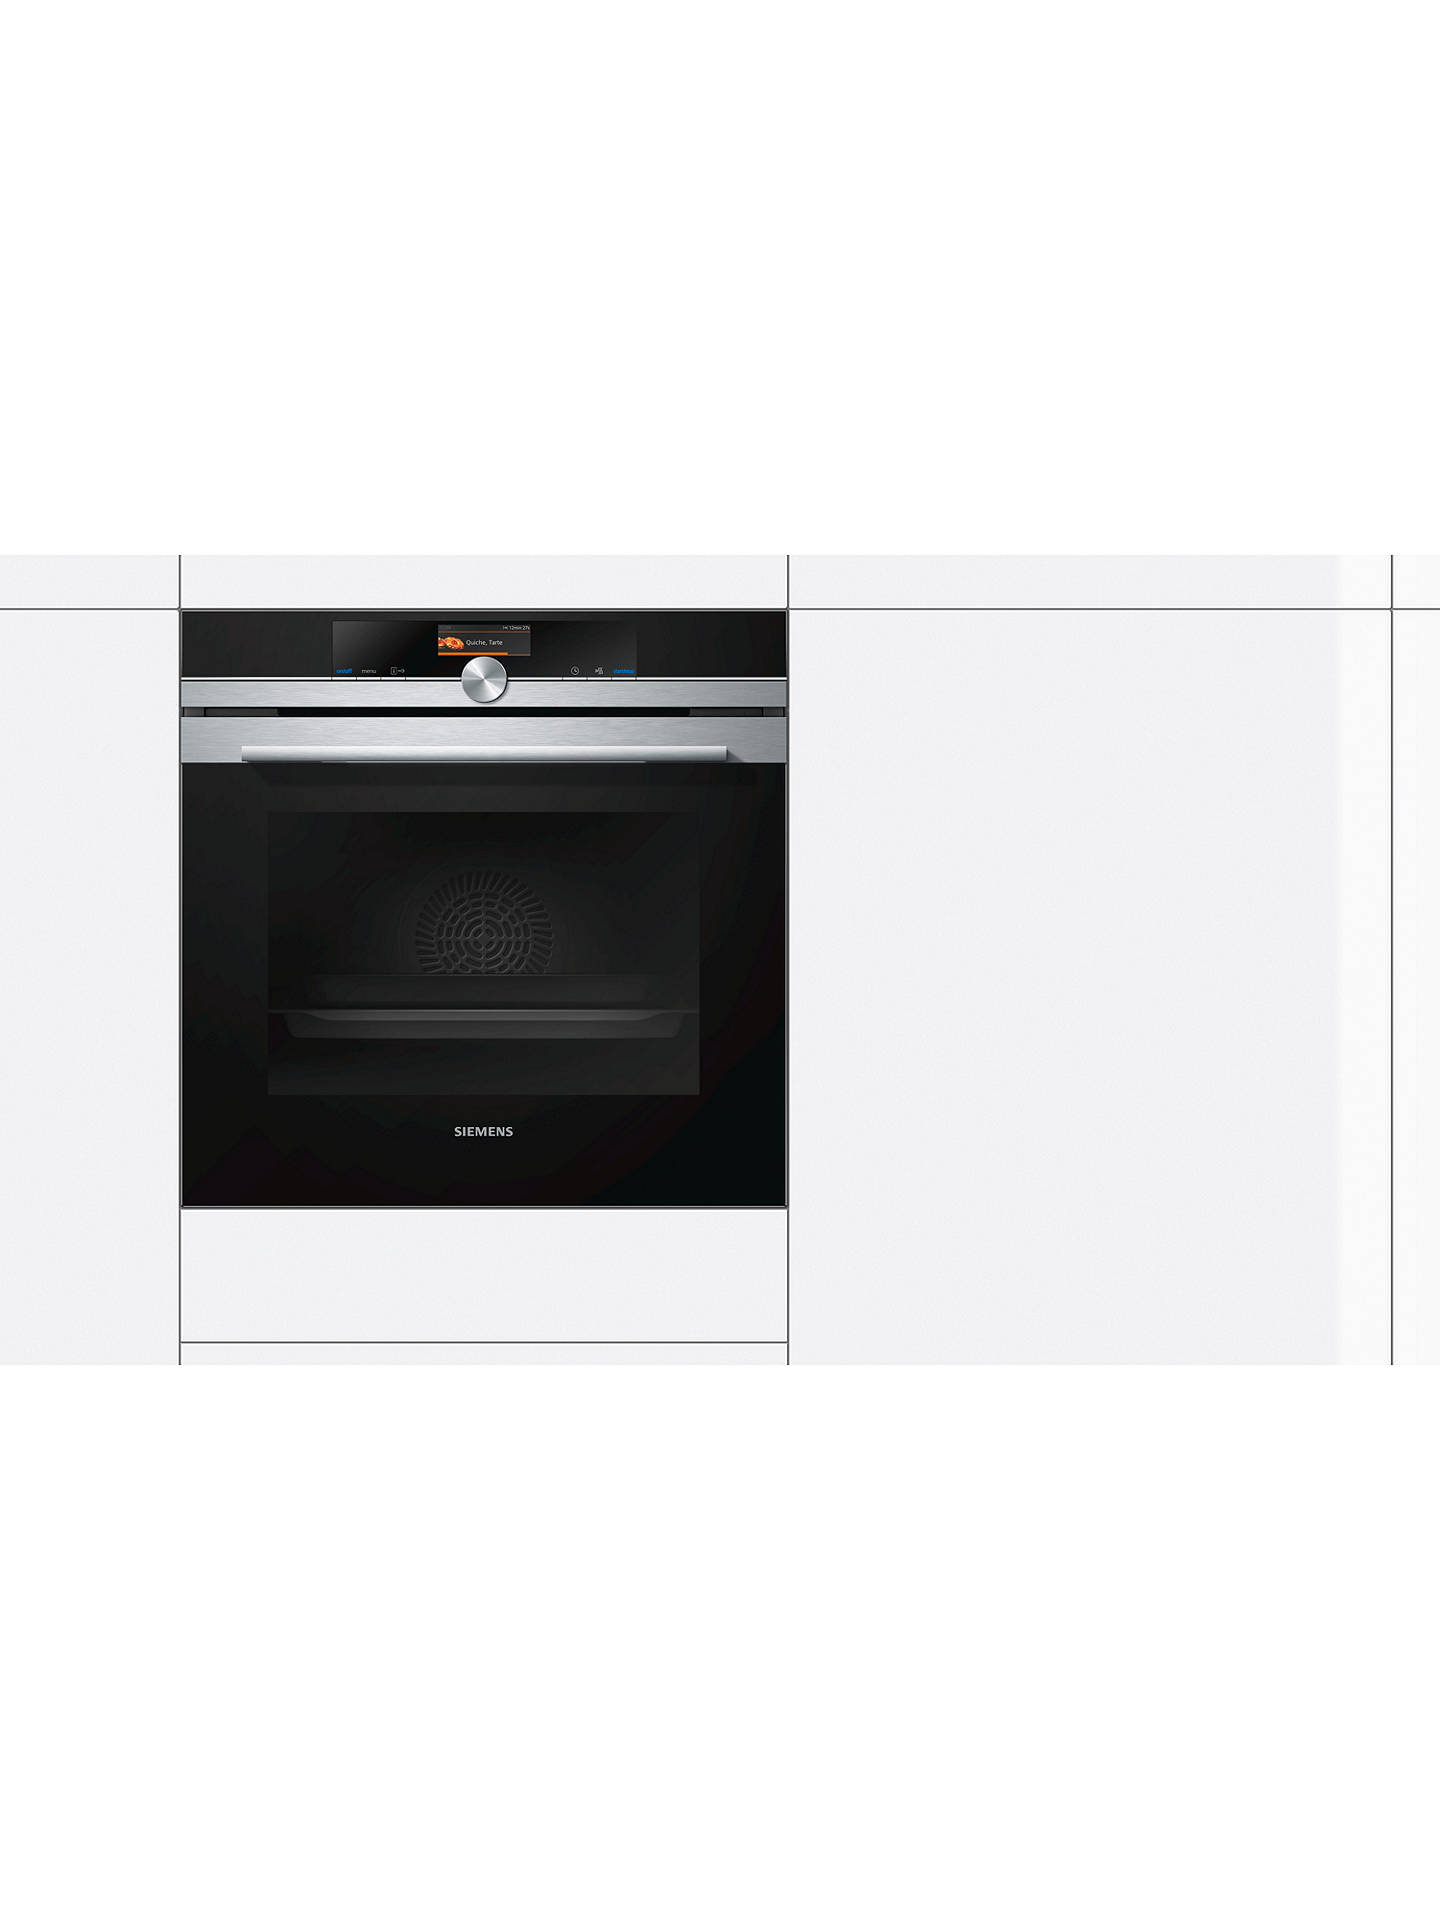 BuySiemens HB676GBS6B Built-In Oven with Home Connect, Black/Stainless Steel Online at johnlewis.com